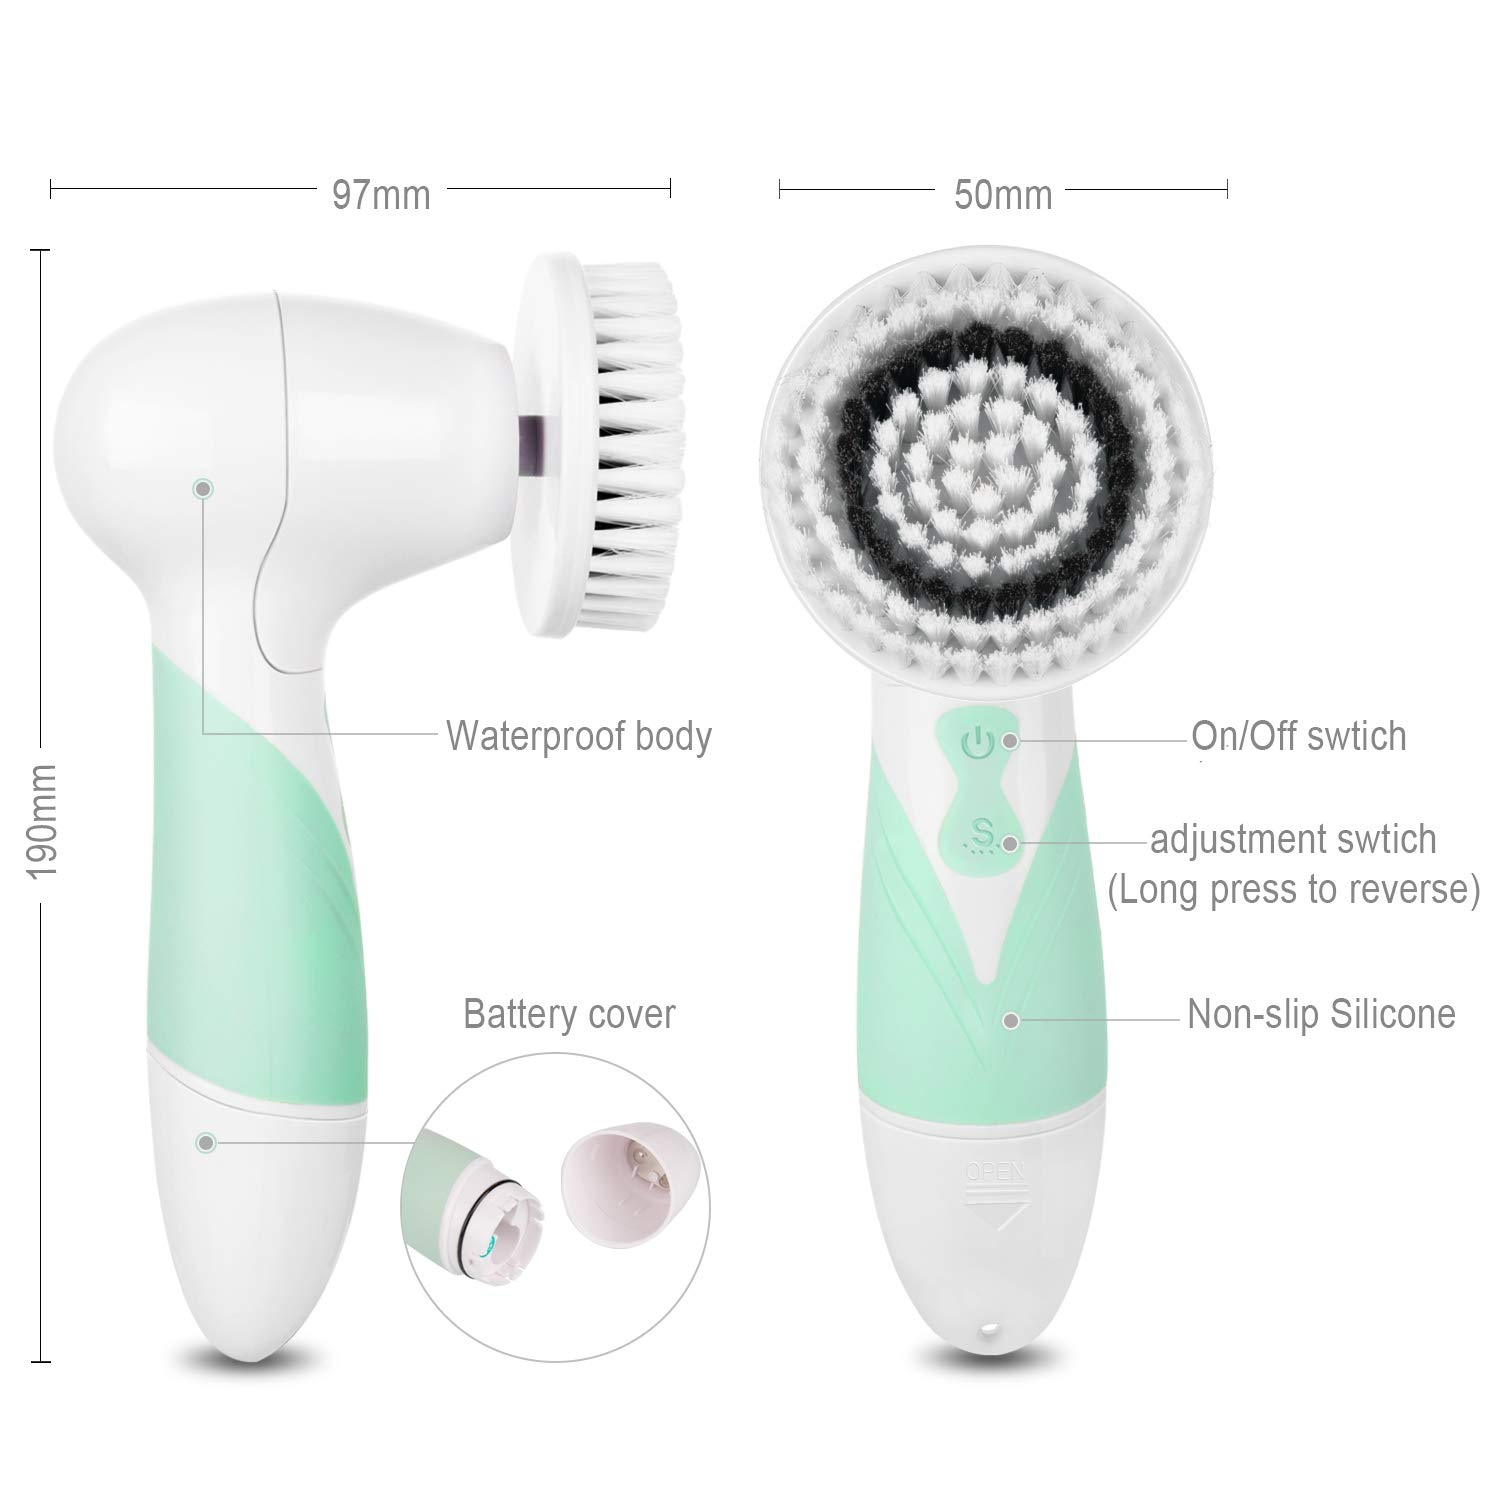 Facial Cleansing Brush - Waterproof Face Scrub Brush with 4 Brush Heads (Green)